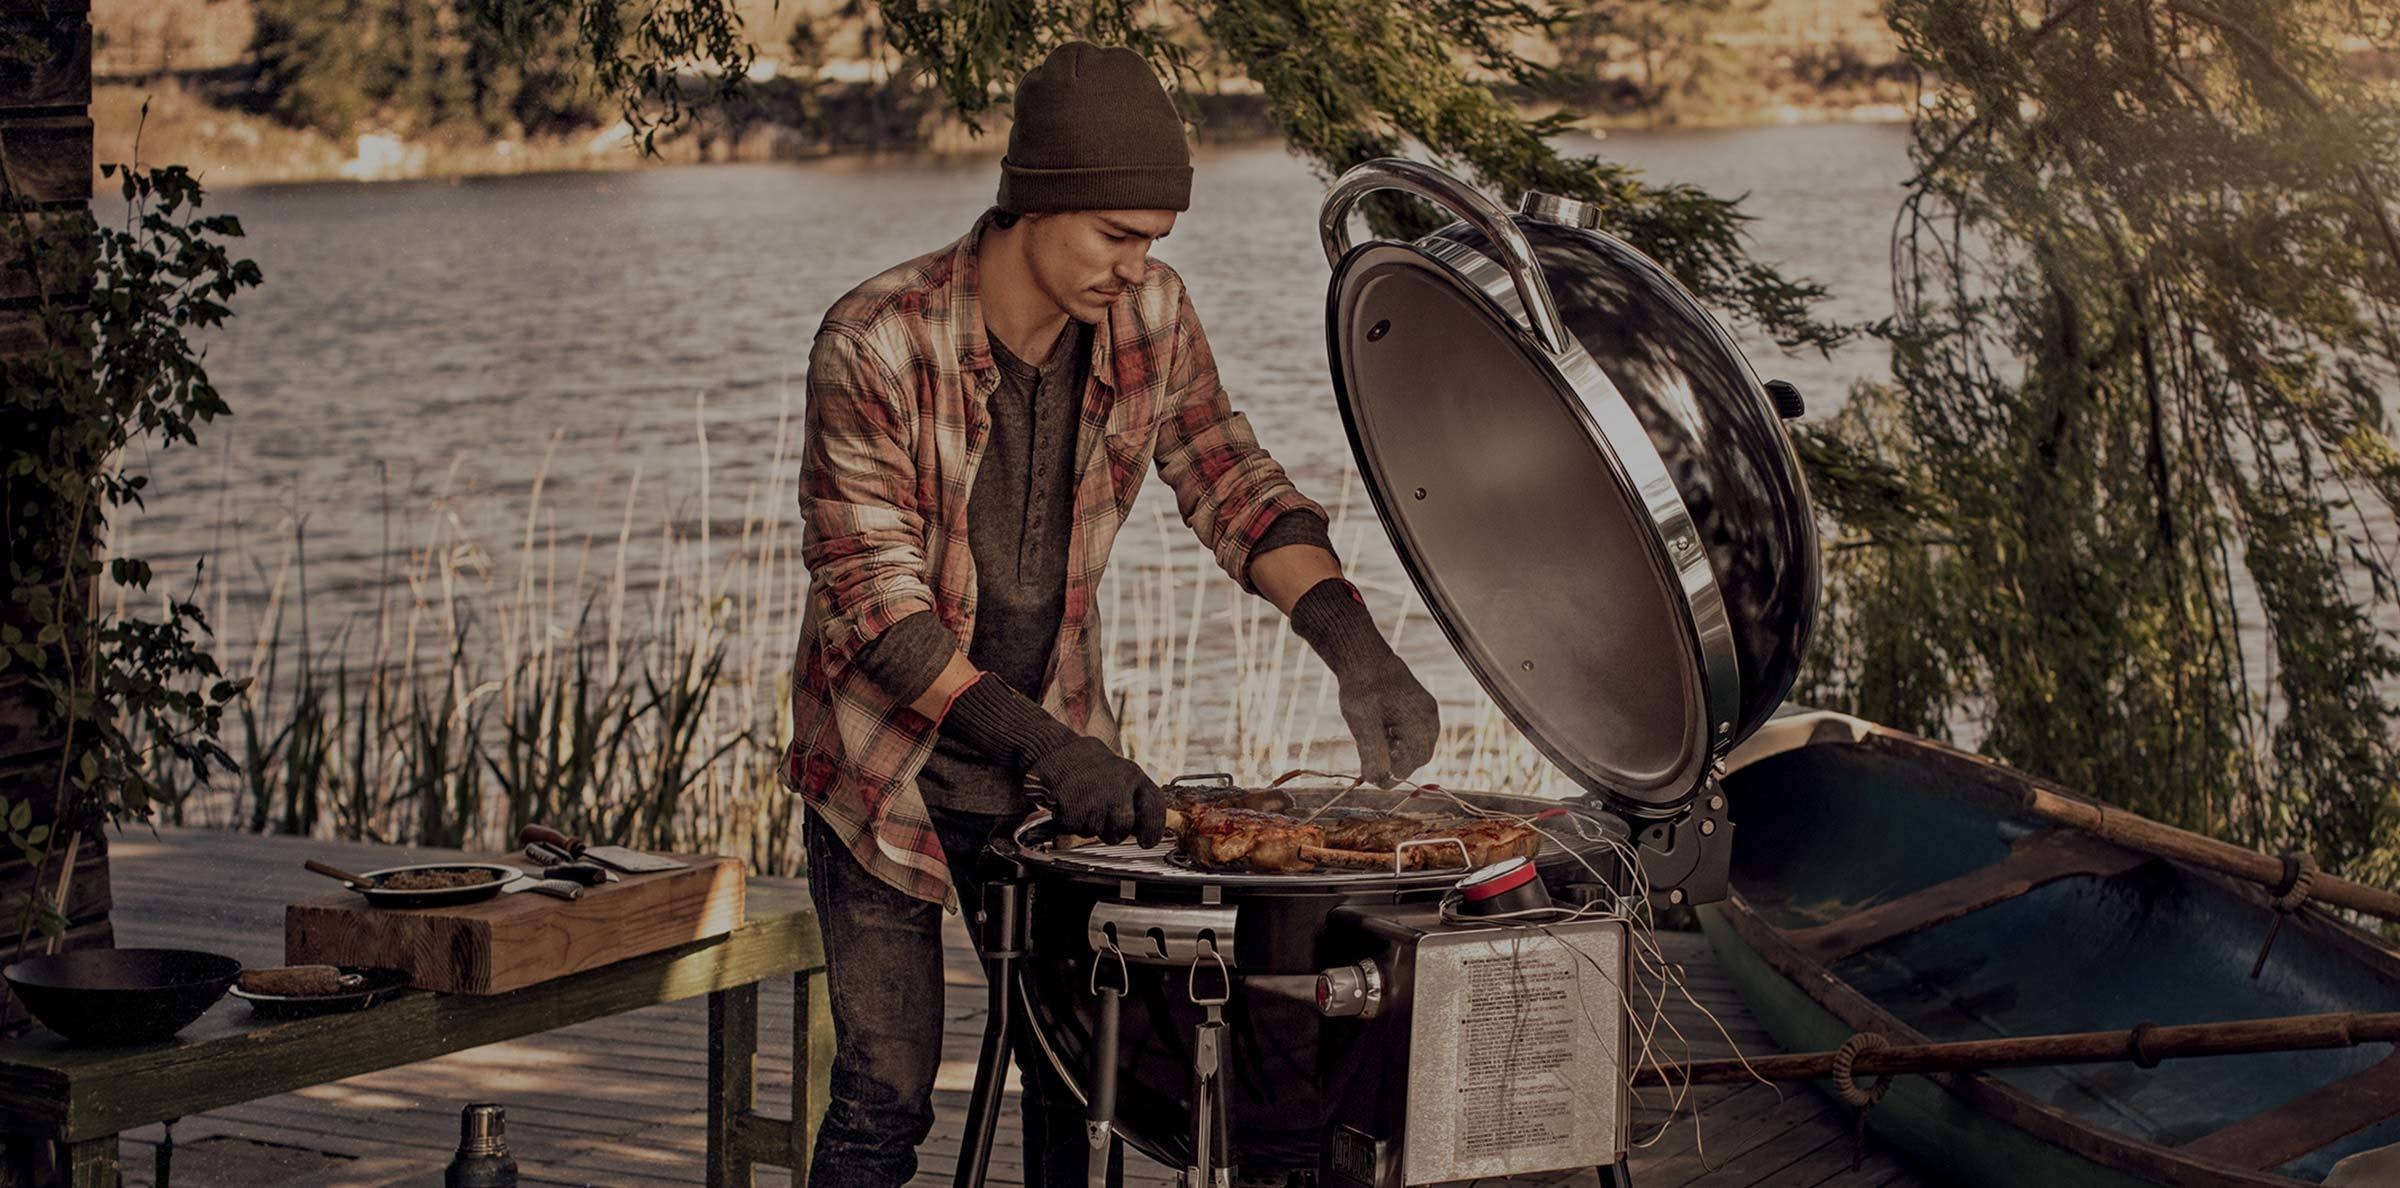 Nuovo Summit Charcoal Grill